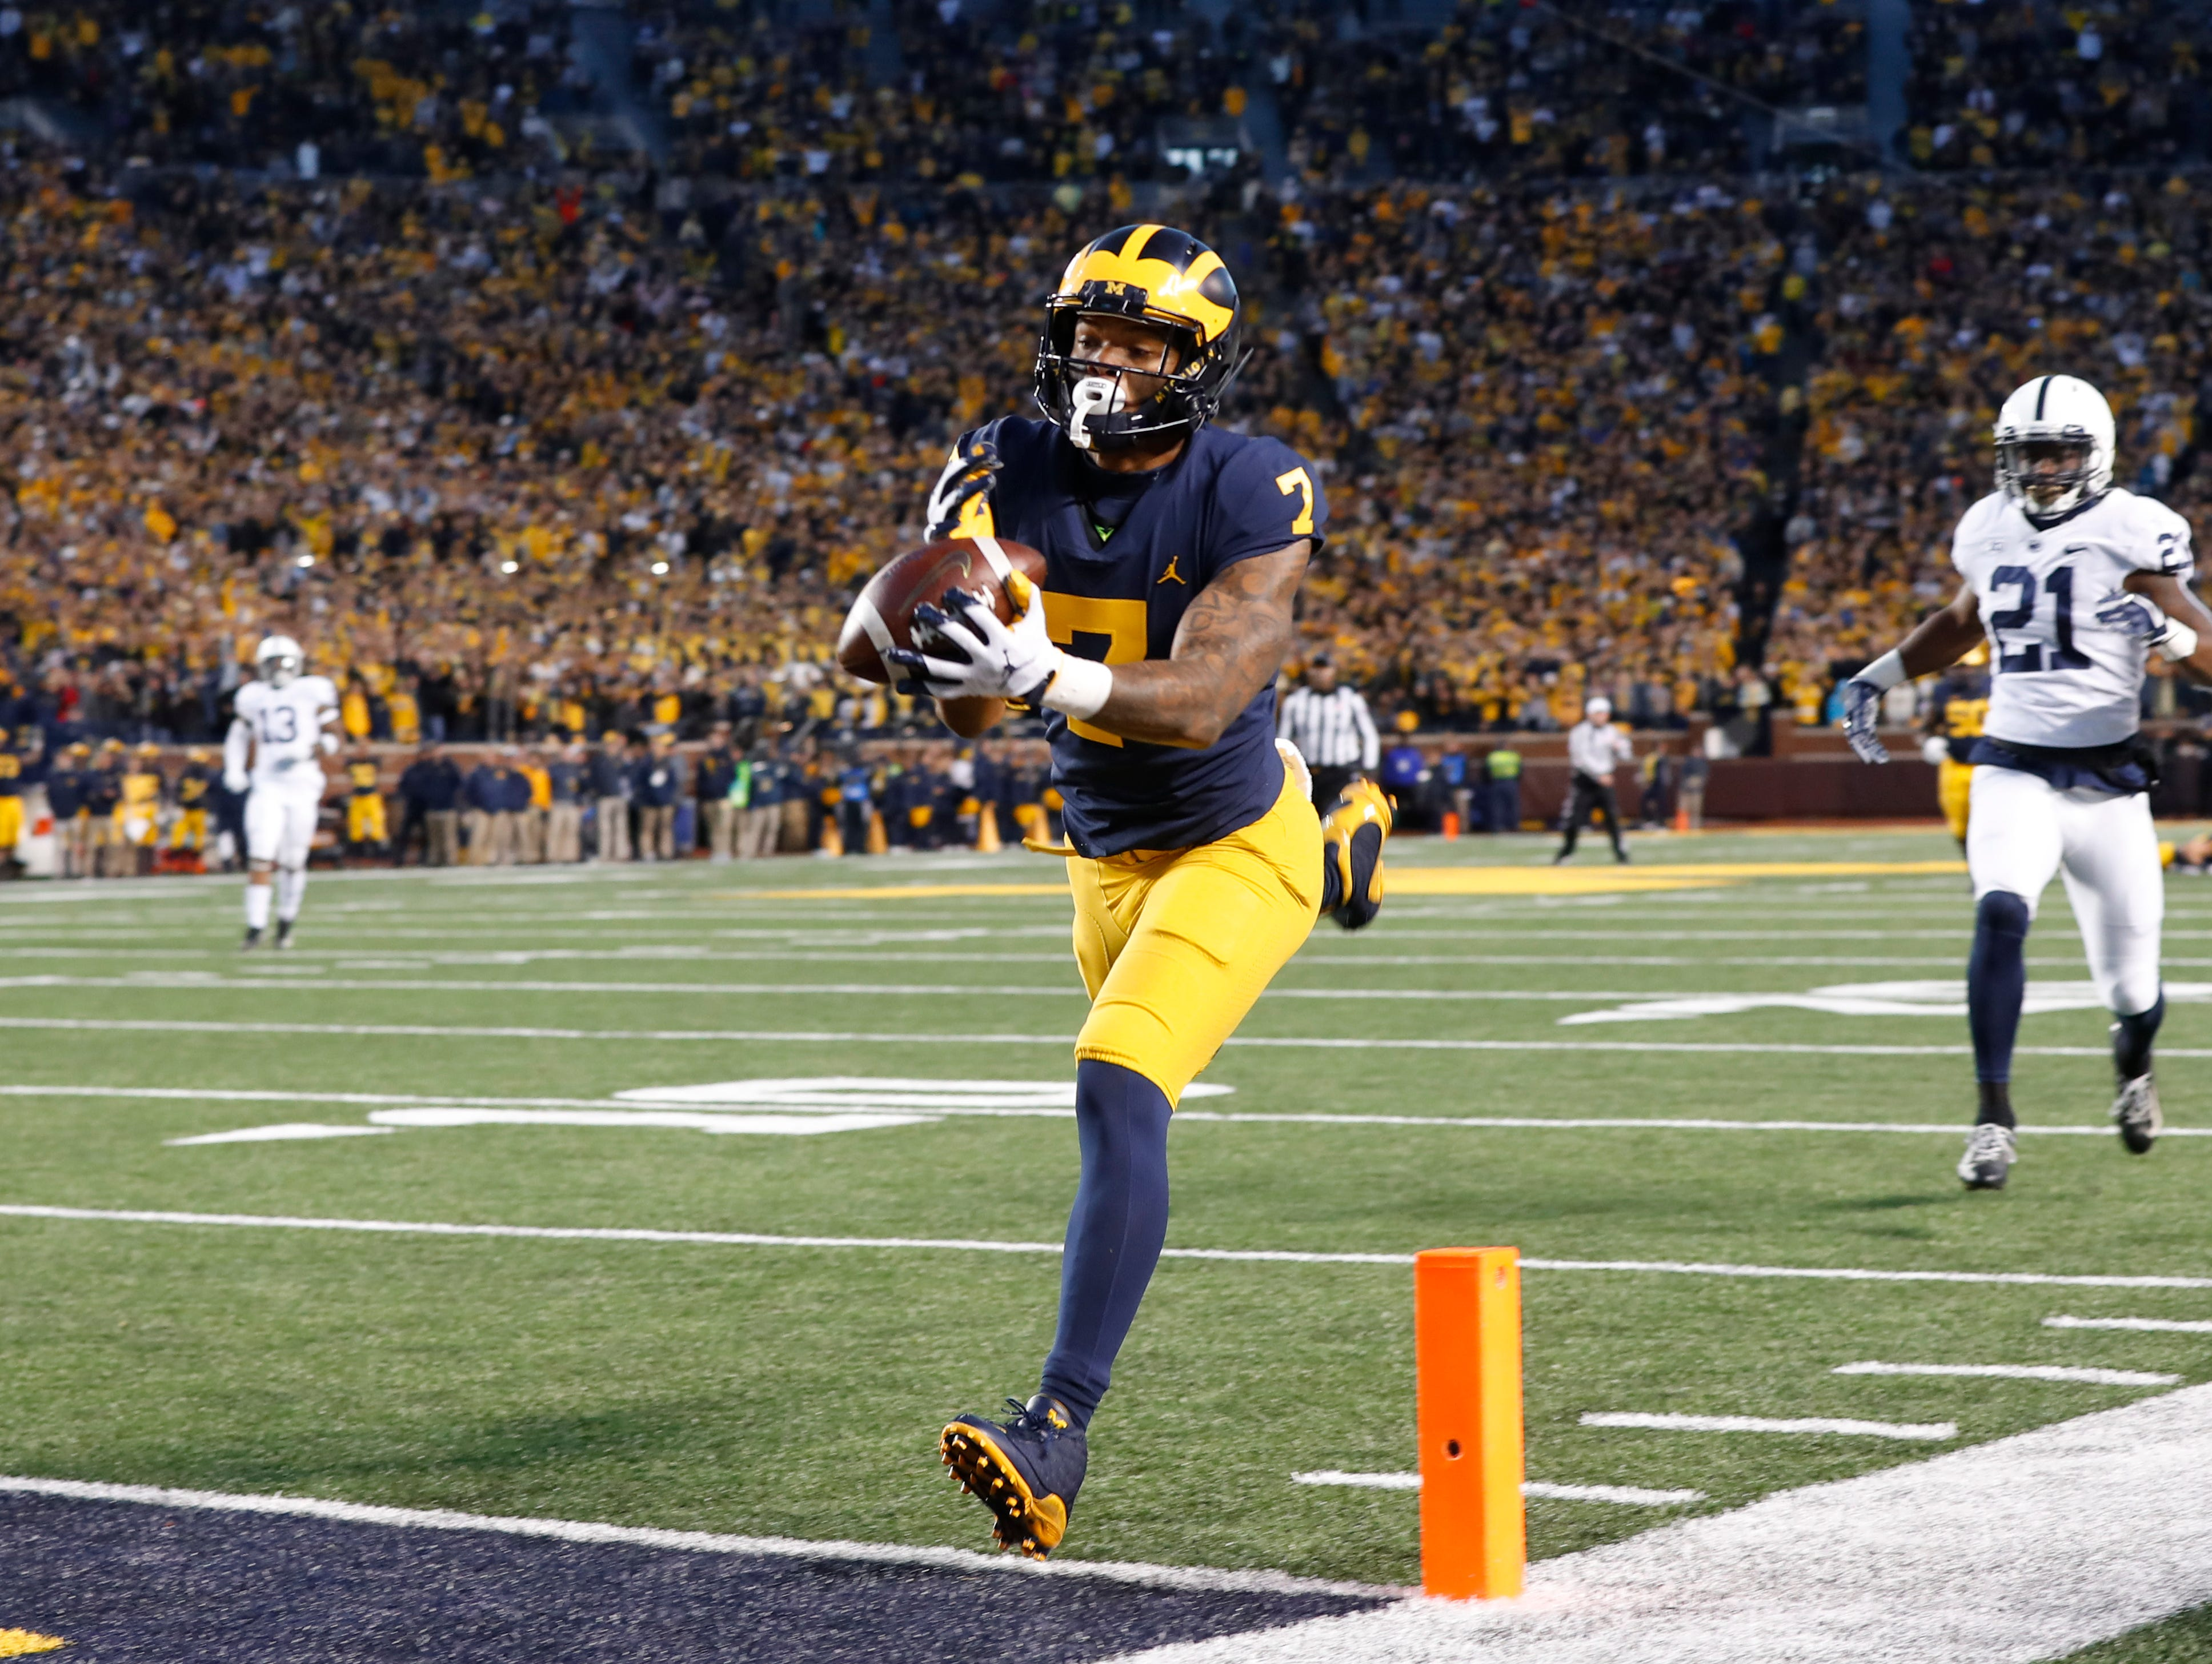 Michigan wide receiver Tarik Black (7) catches a pass in the end zone which was called back for a penalty in the second half of an NCAA college football game against Penn State in Ann Arbor, Mich., Saturday, Nov. 3, 2018. (AP Photo/Paul Sancya)